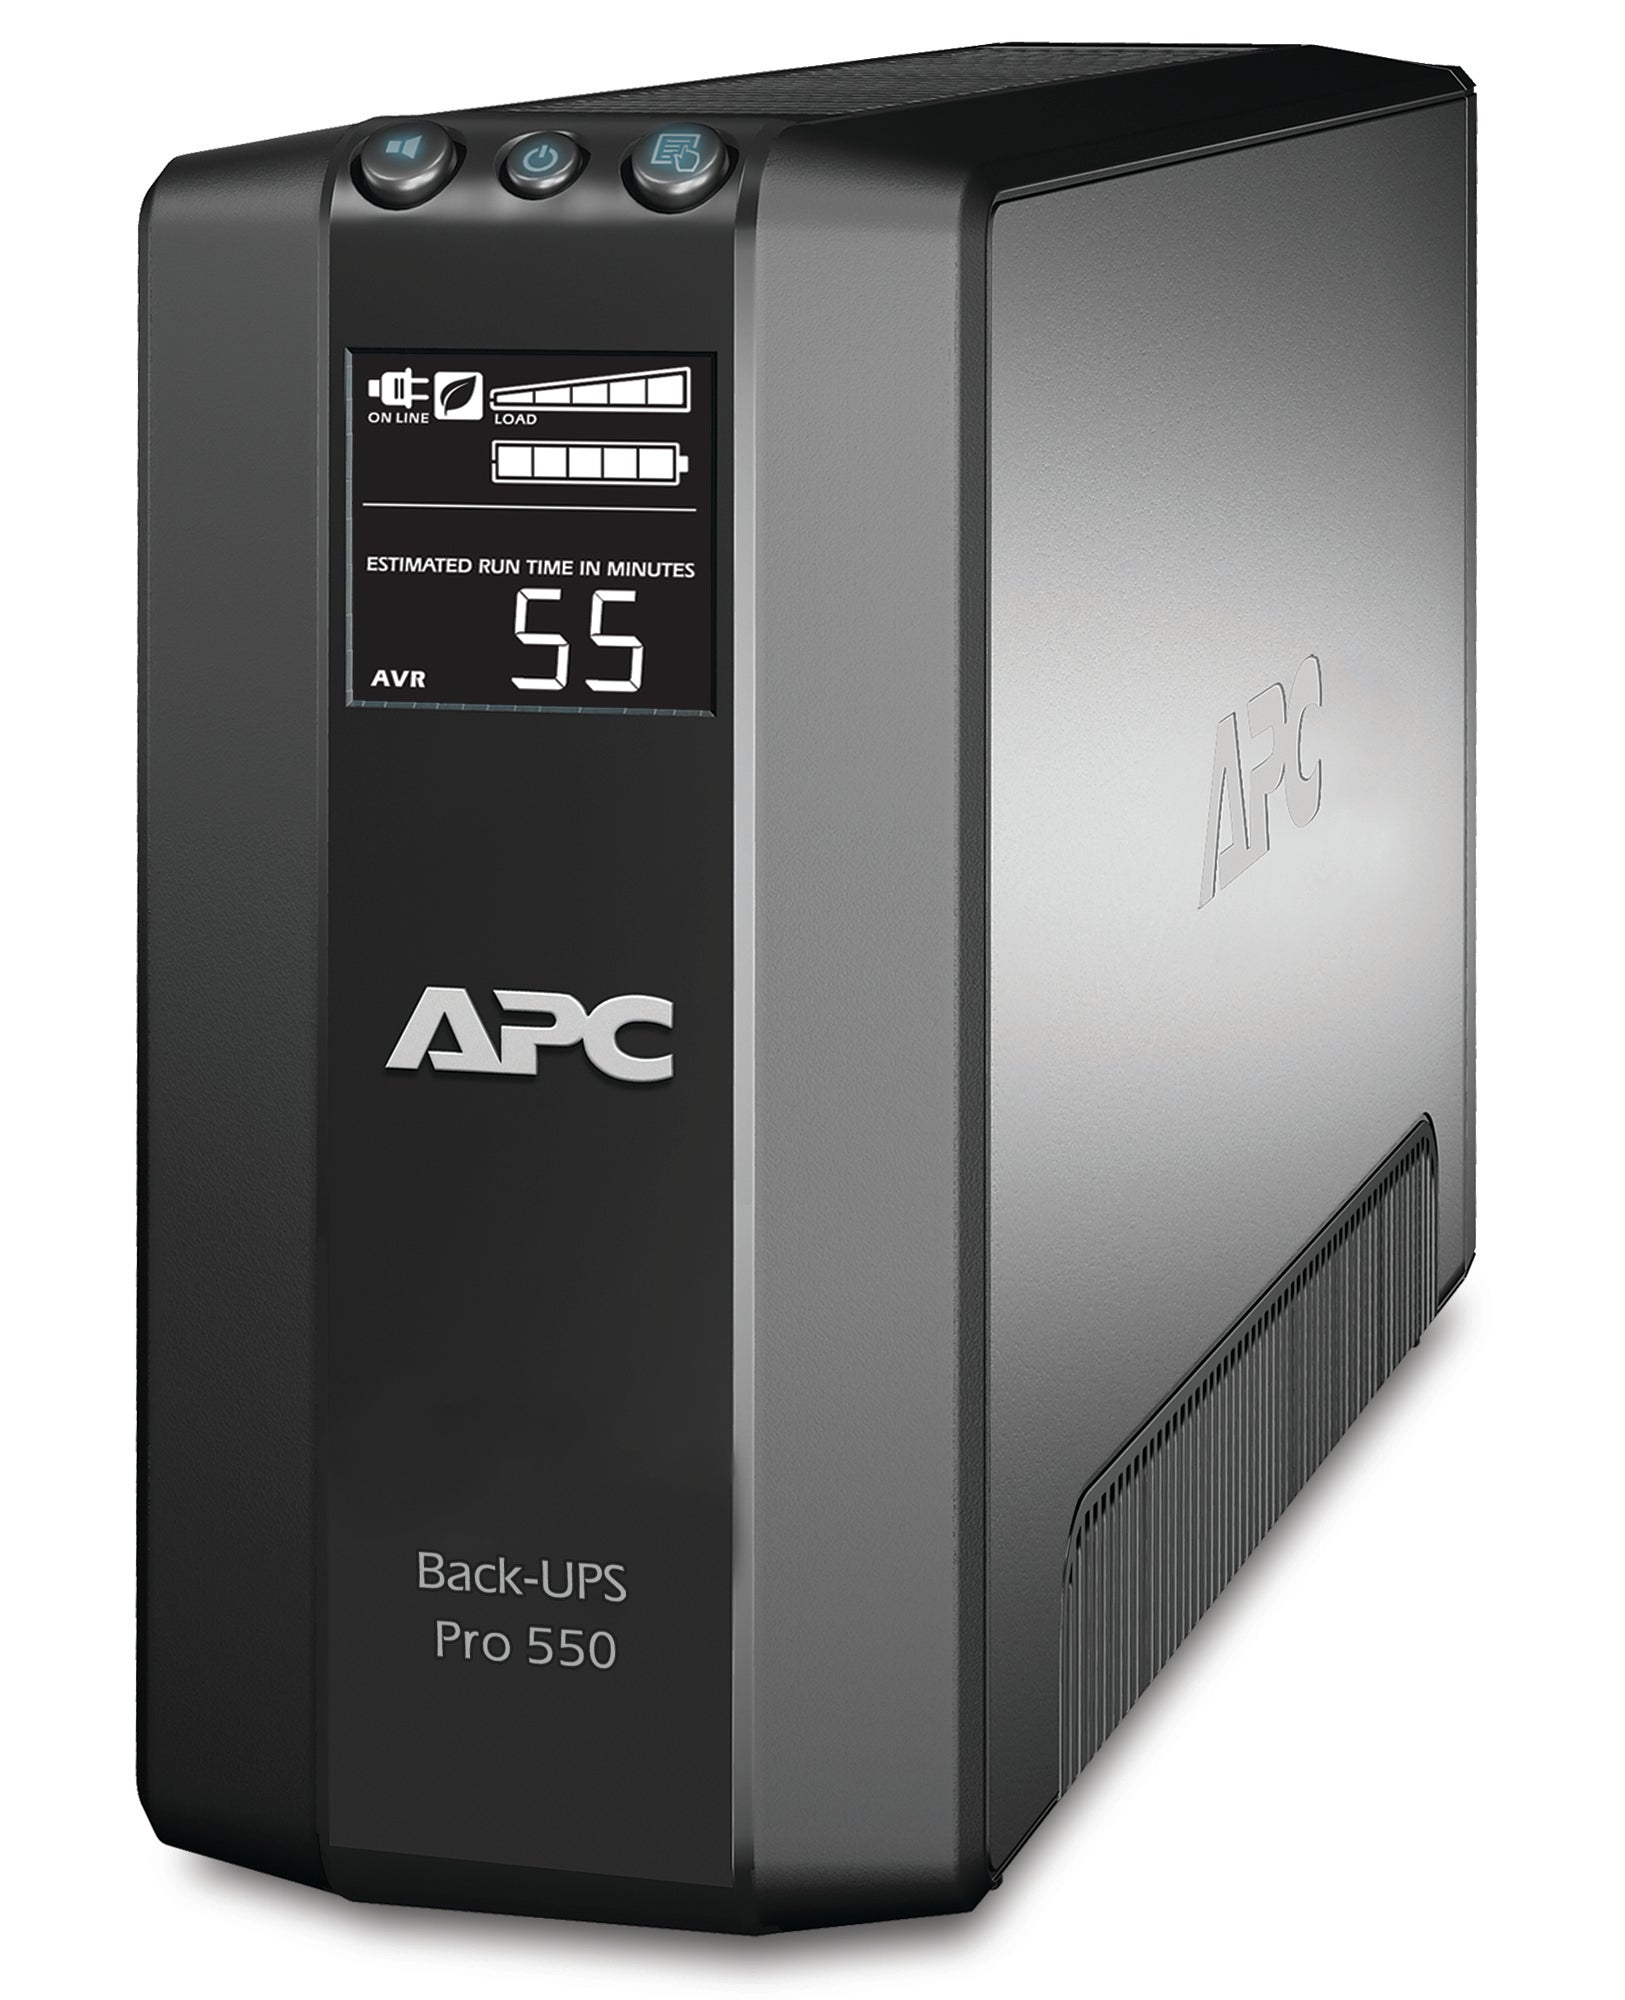 BR550GI APC Power-Saving Back-UPS Pro 550